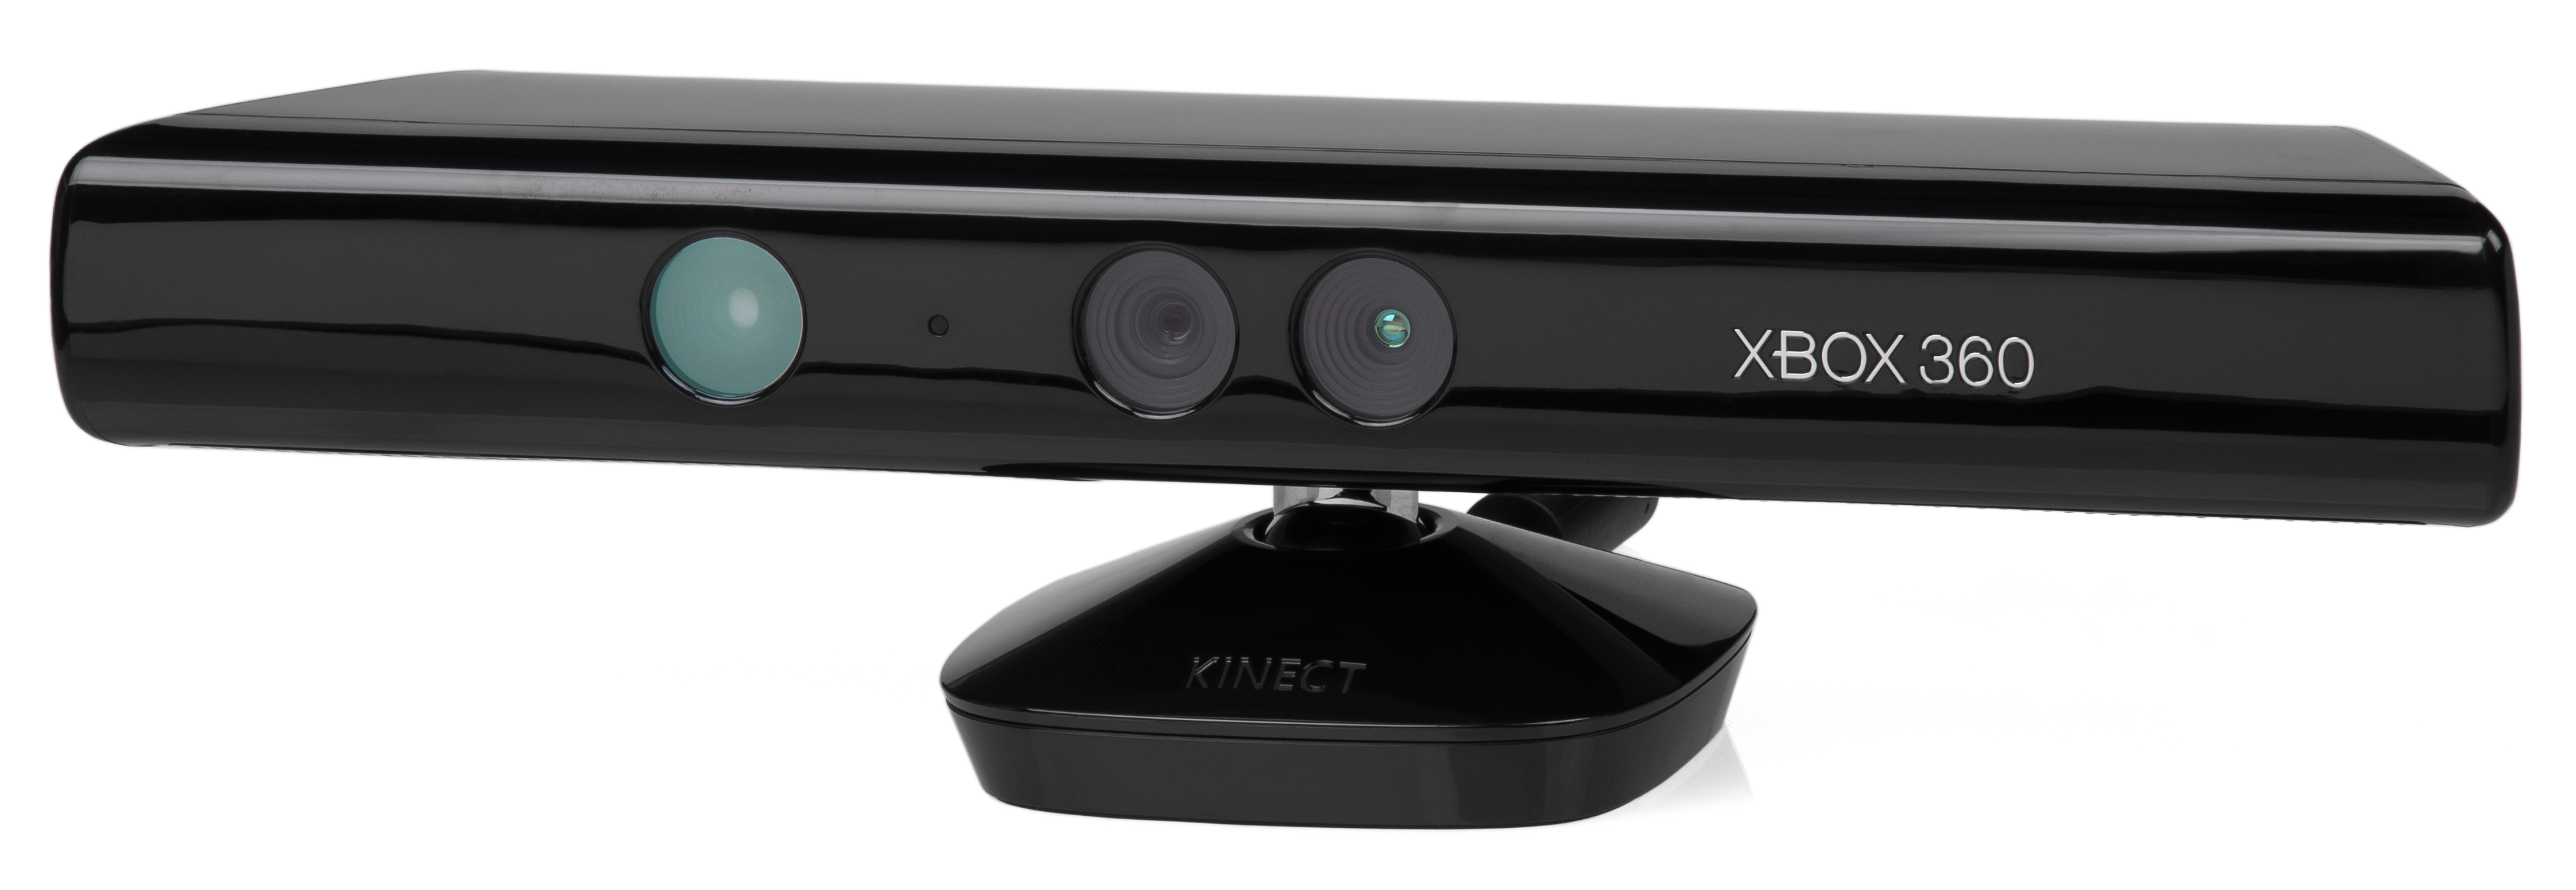 Description Xbox-360-Kinect-Standalone.png